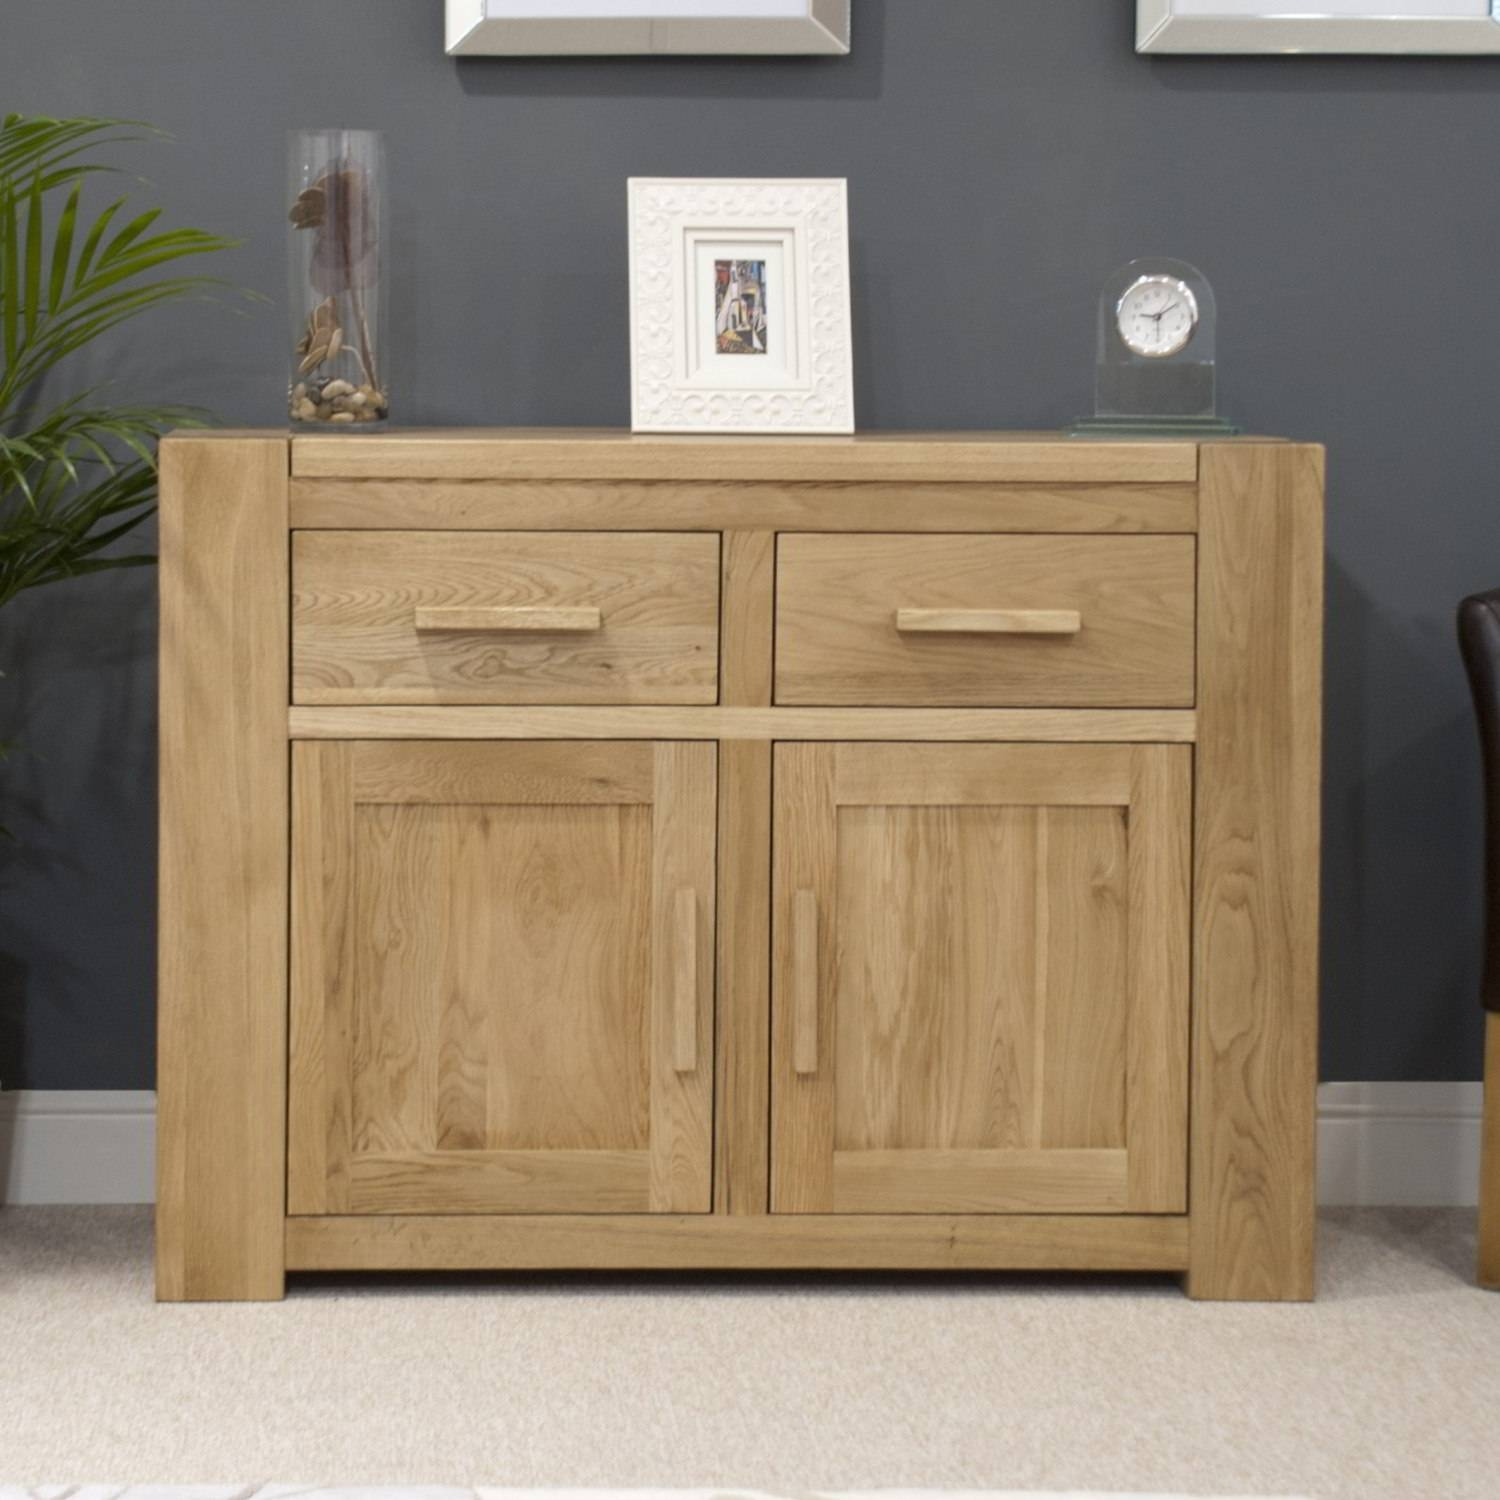 Pemberton Solid Oak Living Room Furniture Medium Storage Sideboard With Regard To Oak Sideboards For Sale (View 13 of 30)